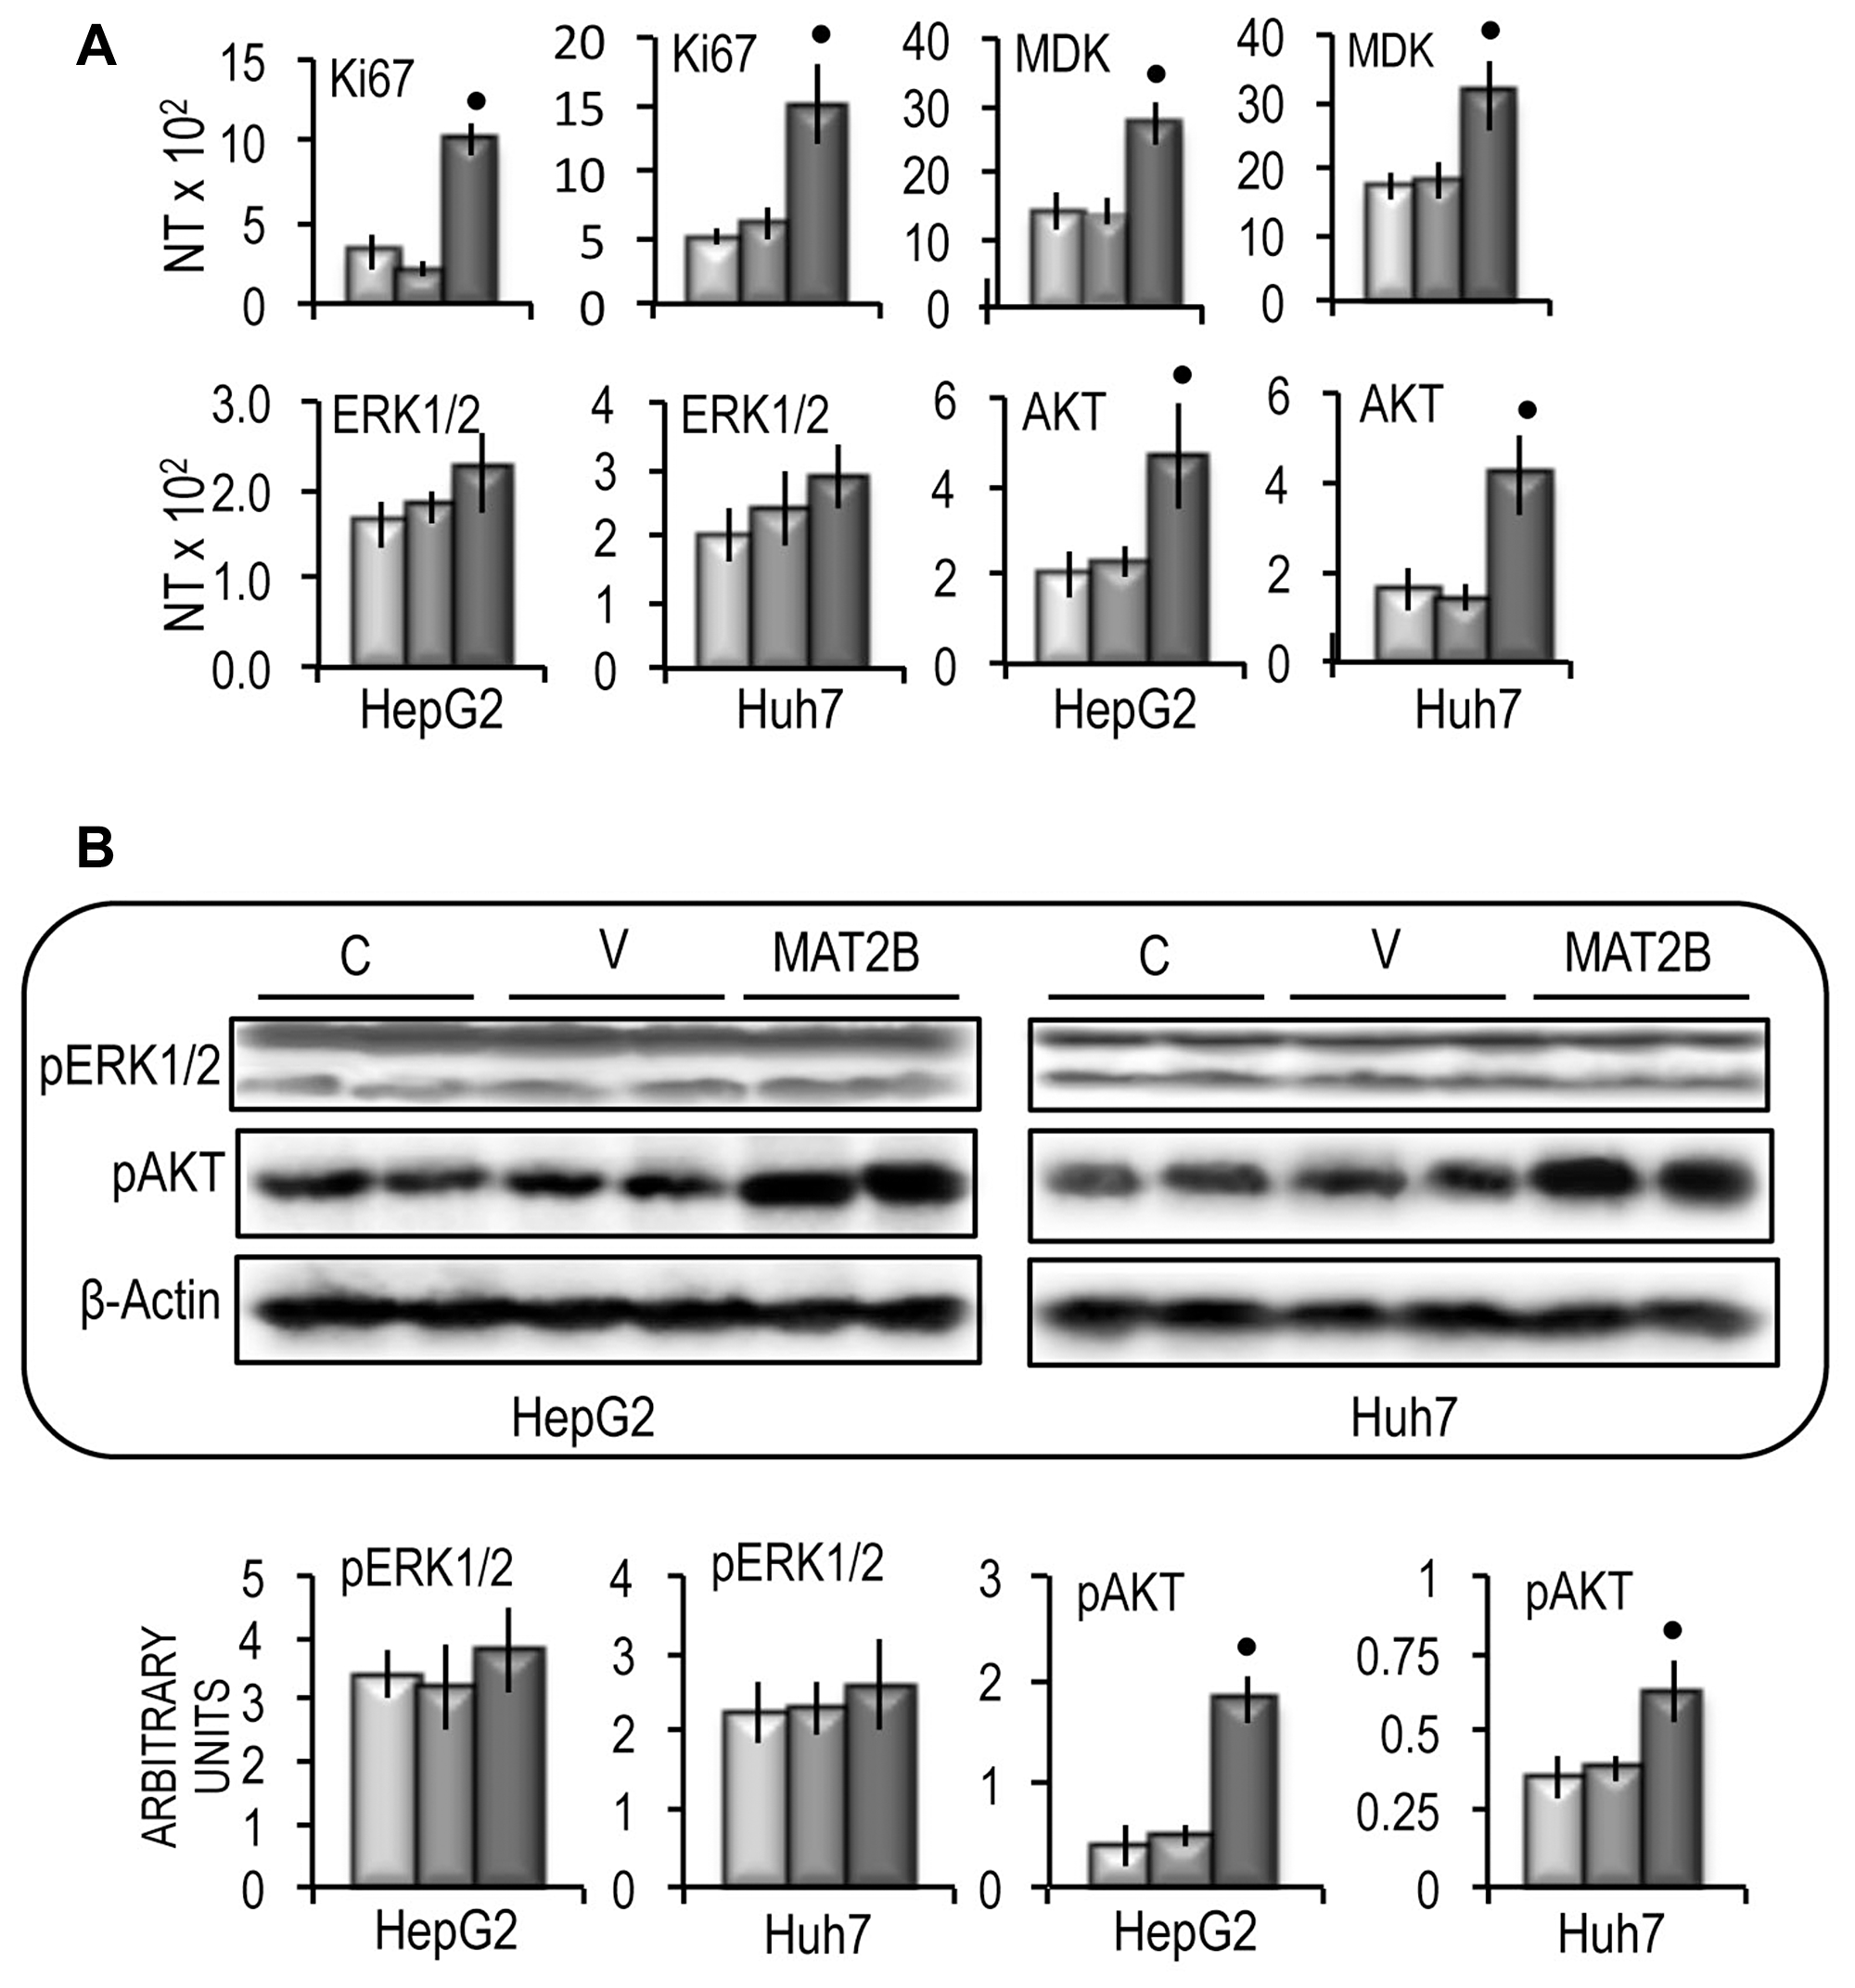 Effect of MAT2B forced expression on Ki67, MDK, ERK1/2 and AKT expression in HepG2 and Huh7 cells.